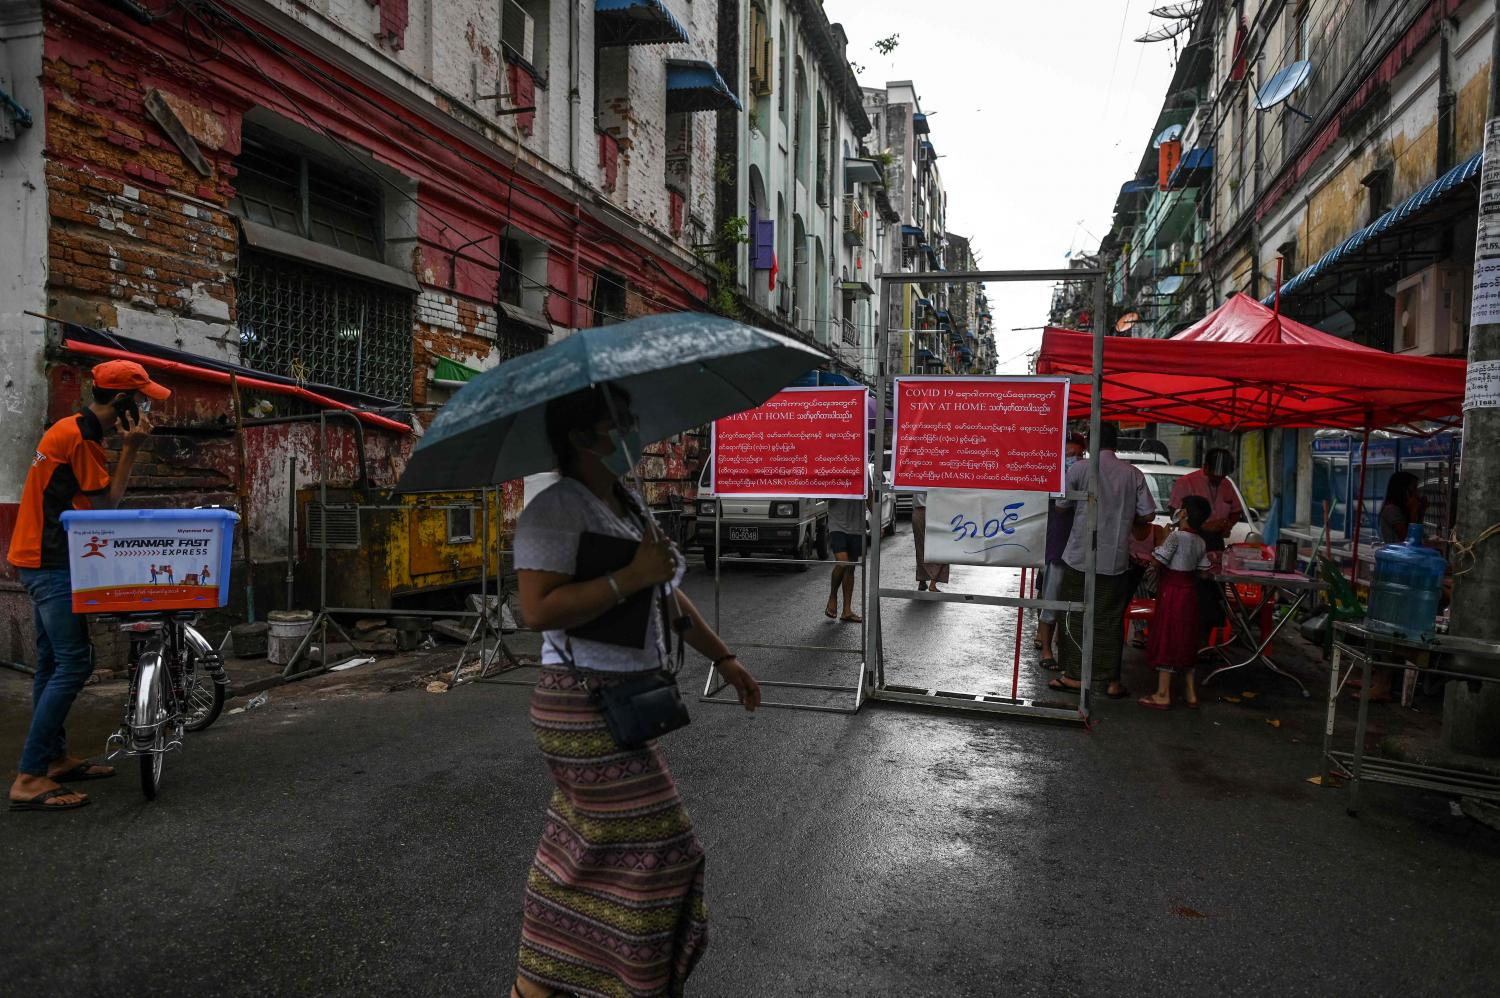 A woman walks past a barrier blocking access to minor roads in Yangon. Much of Myanmar is under lockdown because of a surge in Covid-19. (AFP photo)